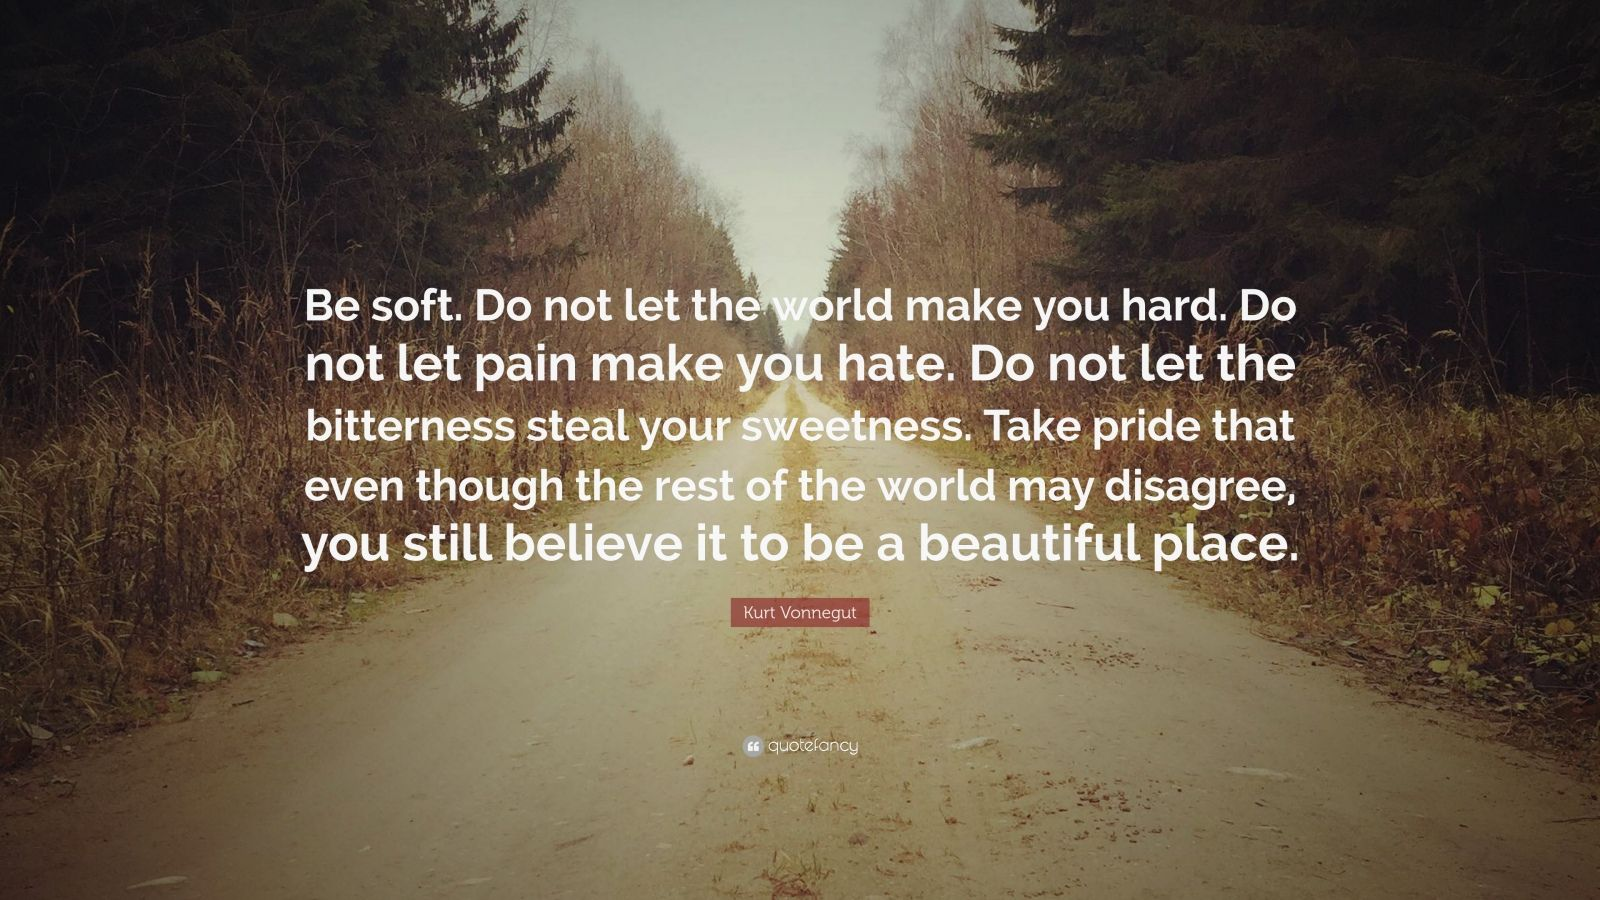 "Kurt Vonnegut Quote: ""Be soft. Do not let the world make you hard. Do not let pain make you hate. Do not let the bitterness steal your sweetness. Take pride that even though the rest of the world may disagree, you still believe it to be a beautiful place."""